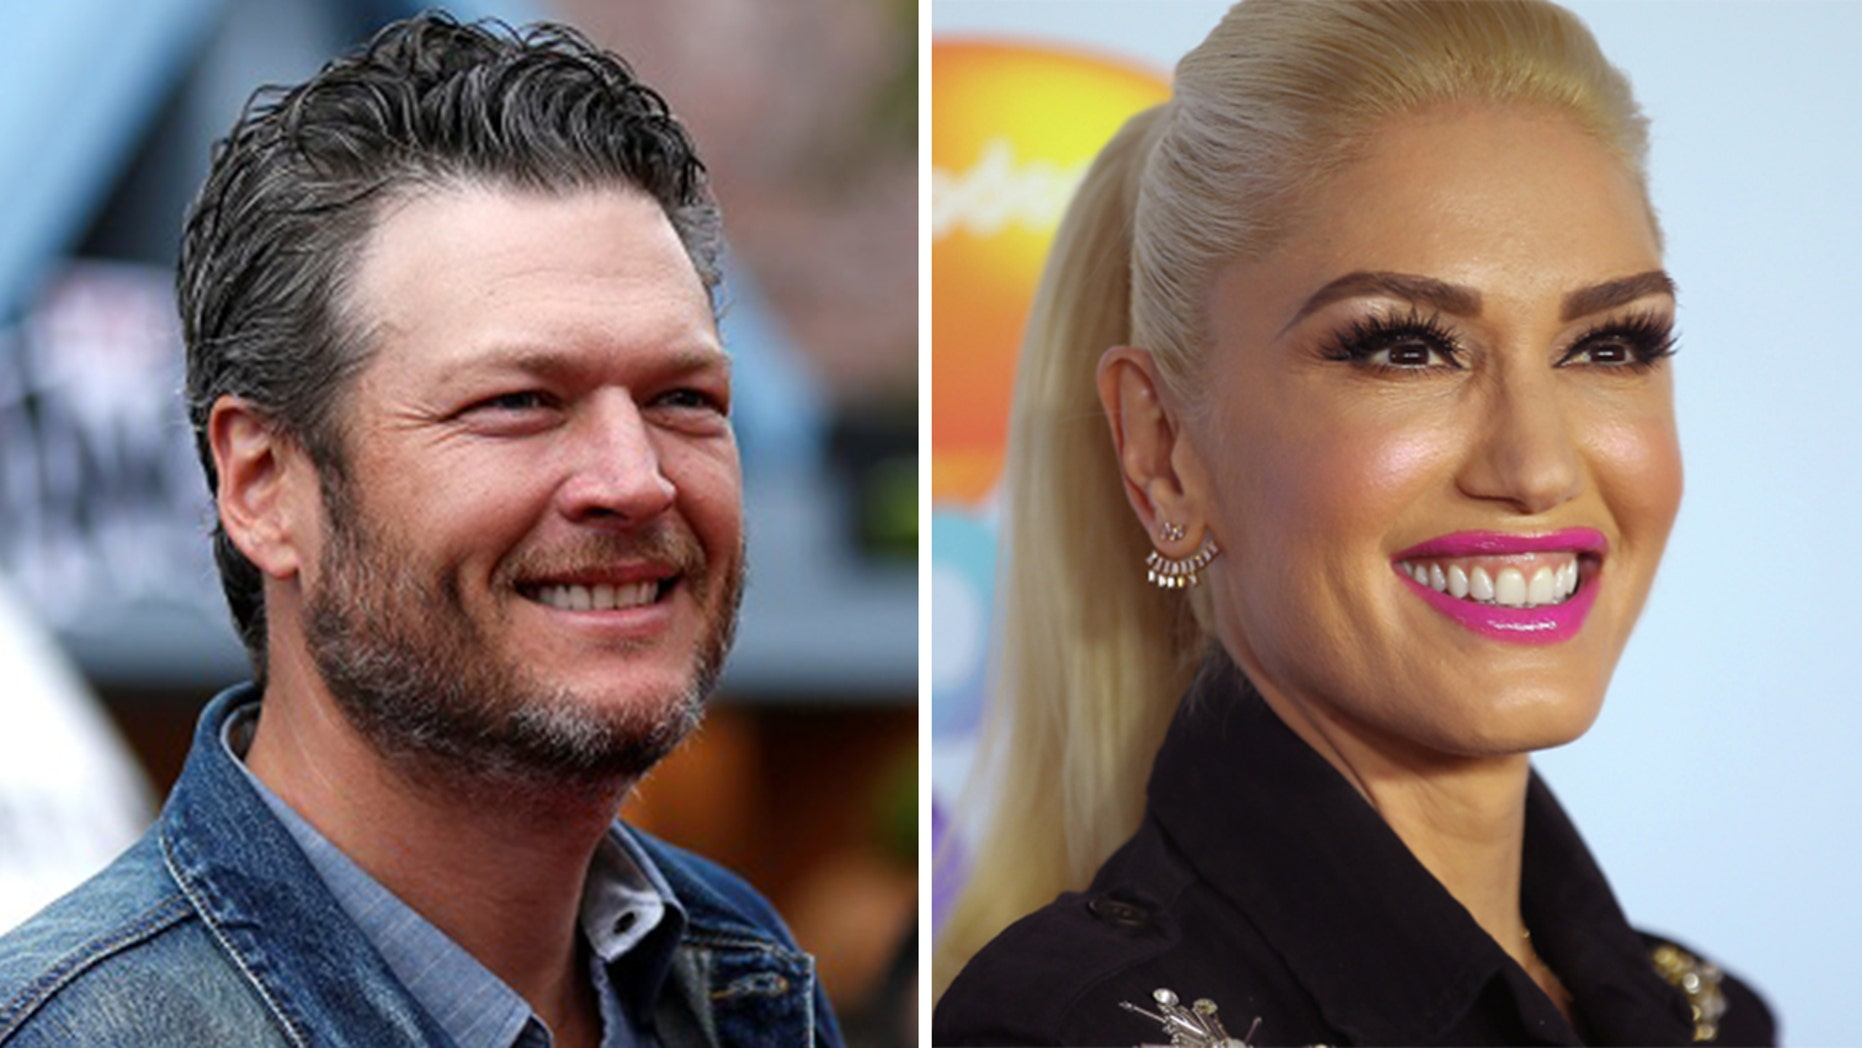 """Blake Shelton says he and Gwen Stefani first thought their relationship was a """"rebound deal"""" in a new interview with Sunday TODAY."""